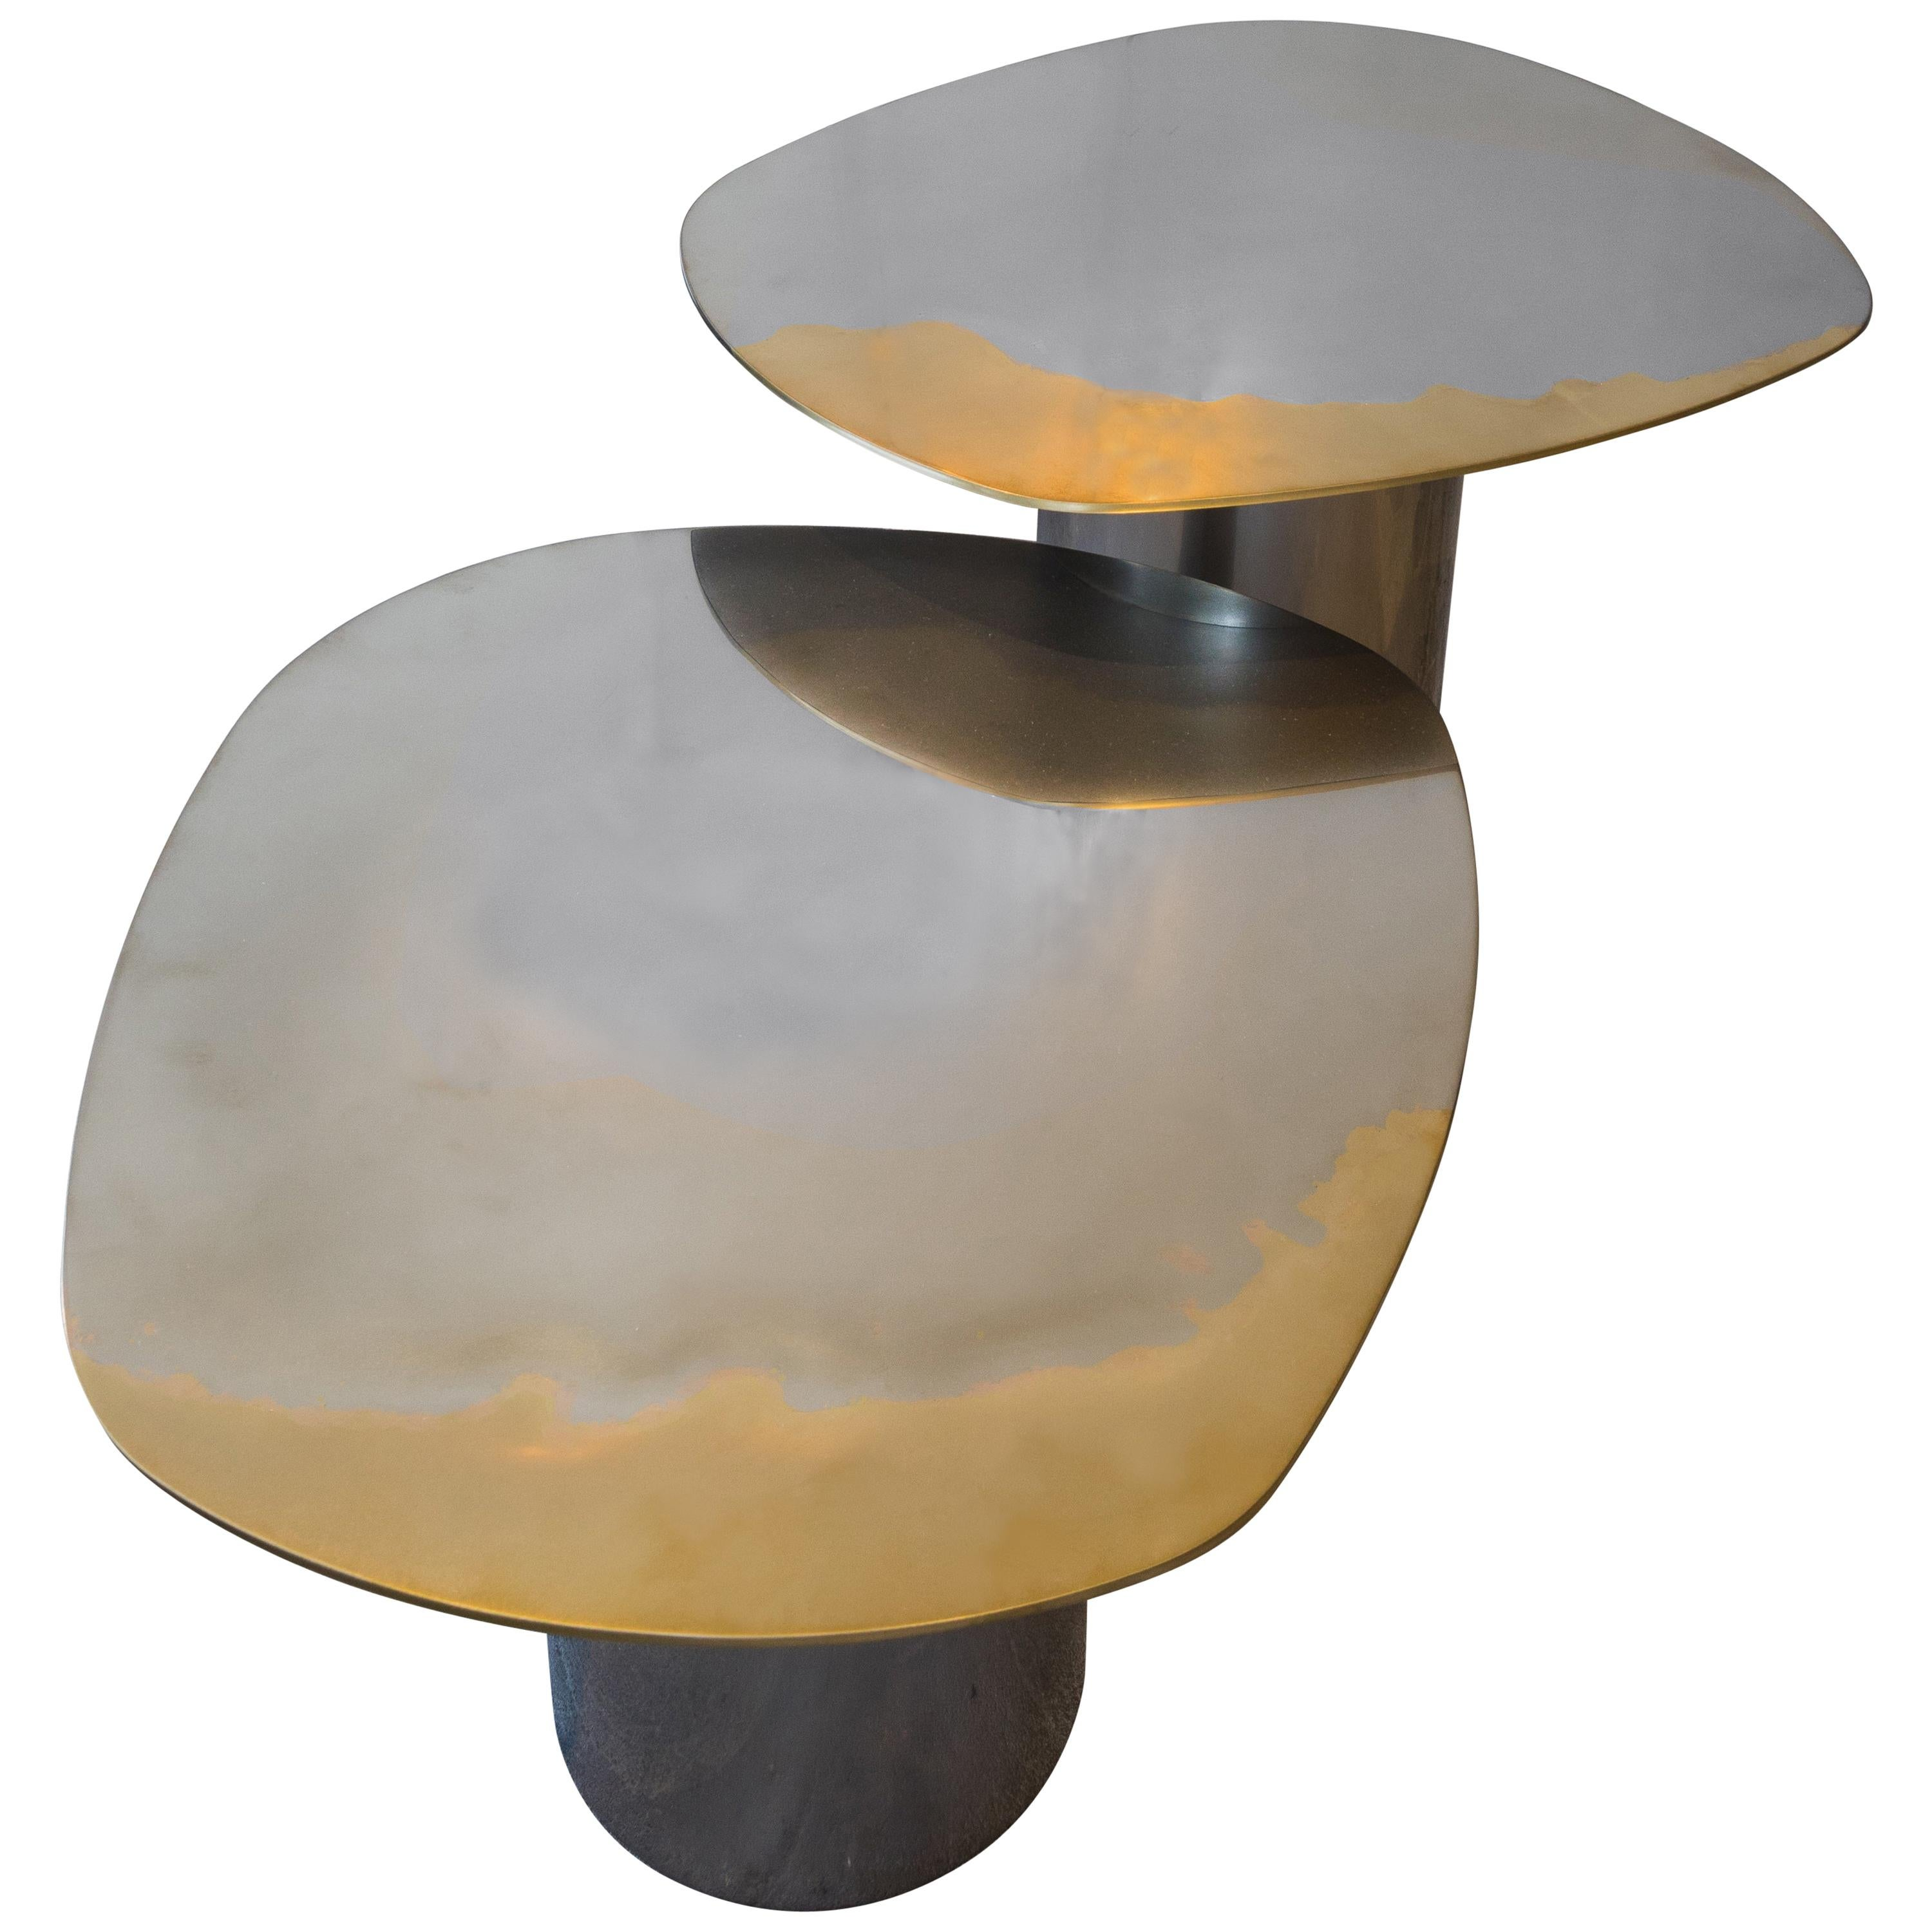 Polished Bimetal  Brass Stainless-Steel Transition Nesting Table by Corinna Warm